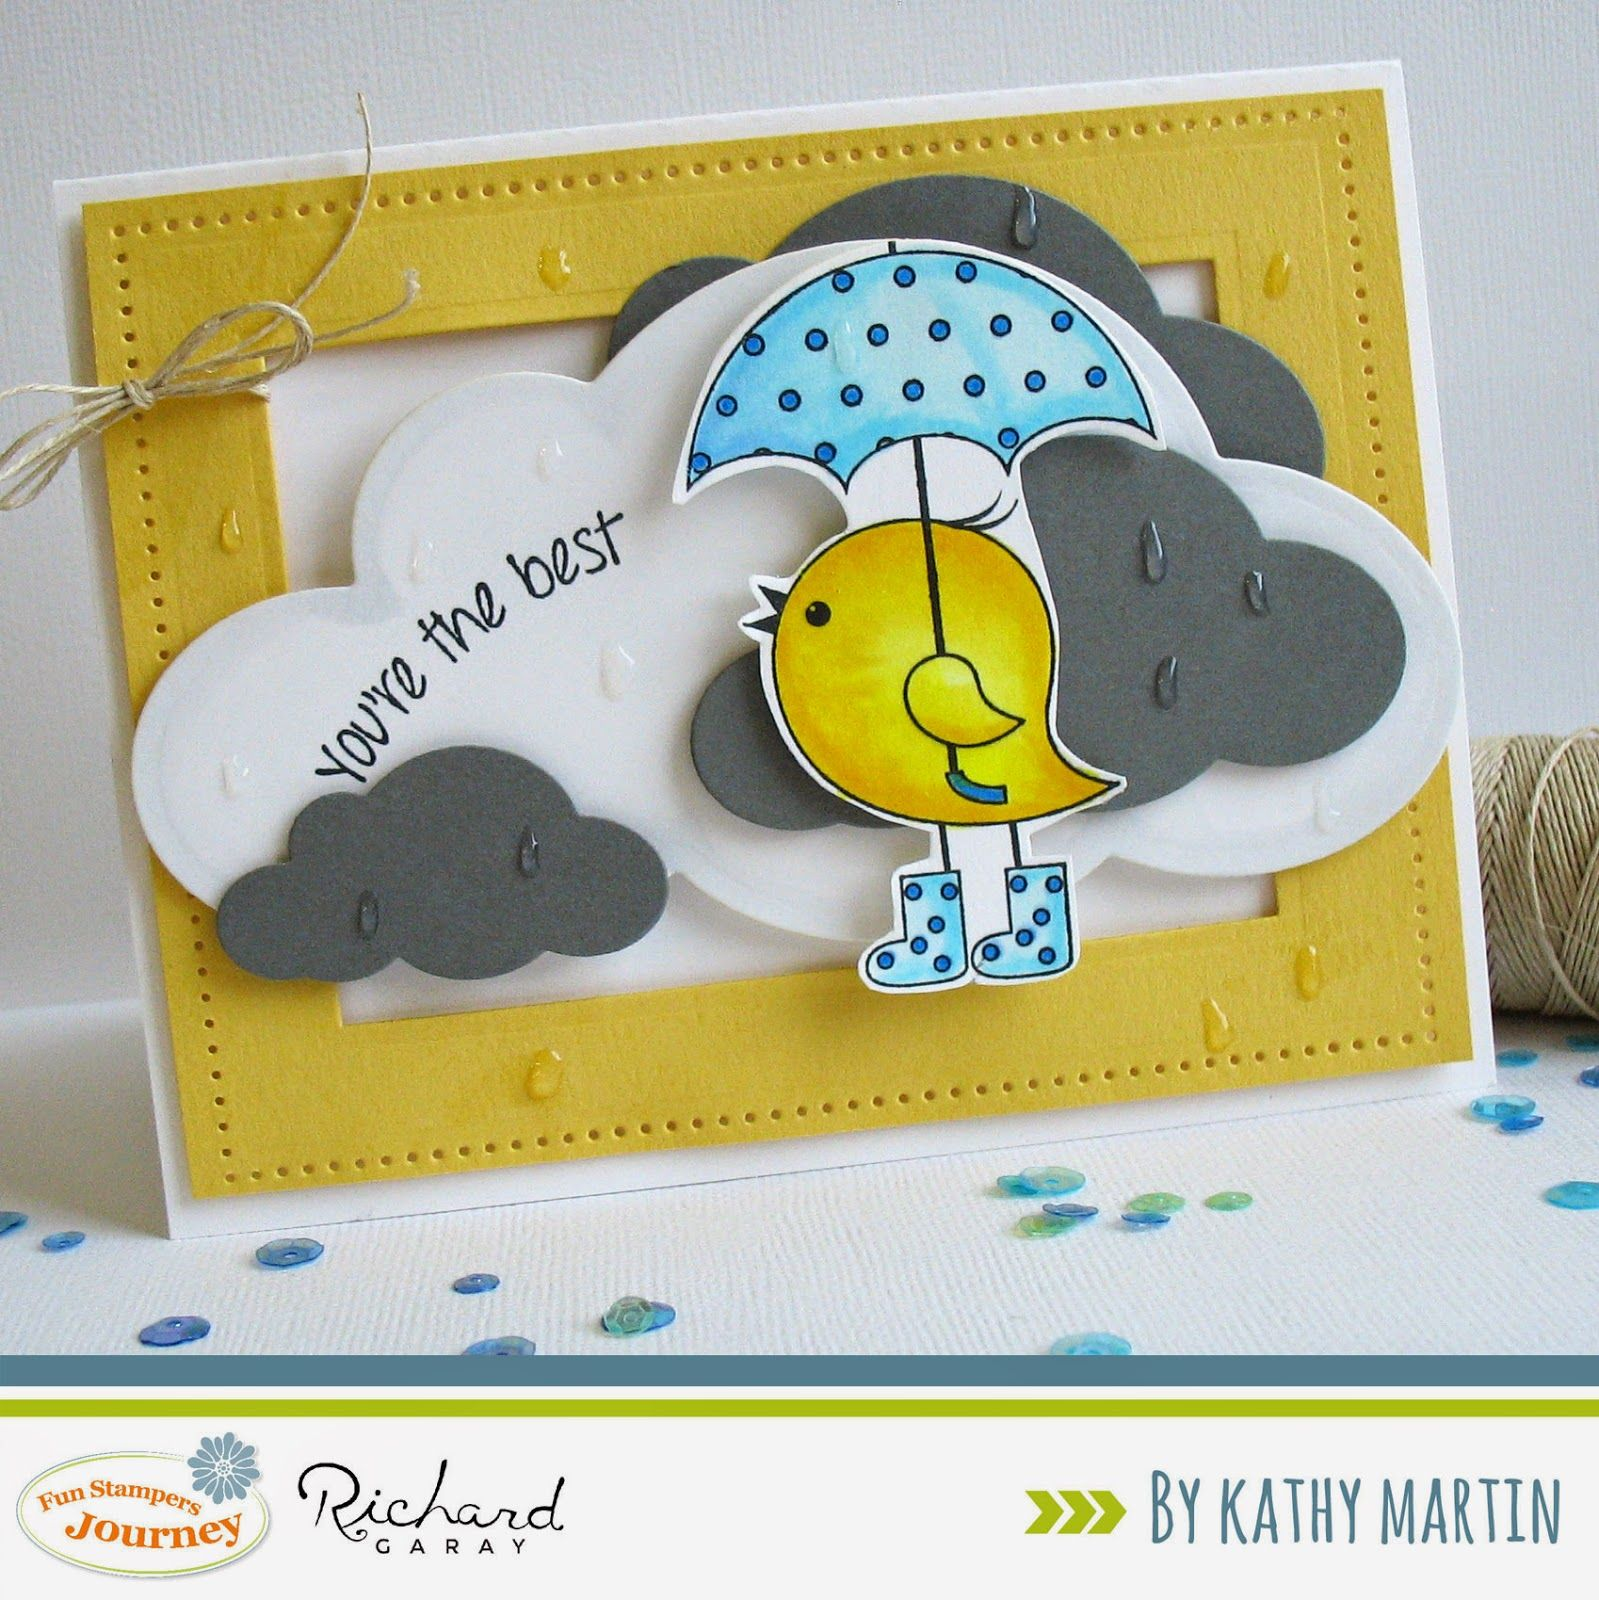 Youre The Best By Kathy Martin For Journey Blooms Using Fun